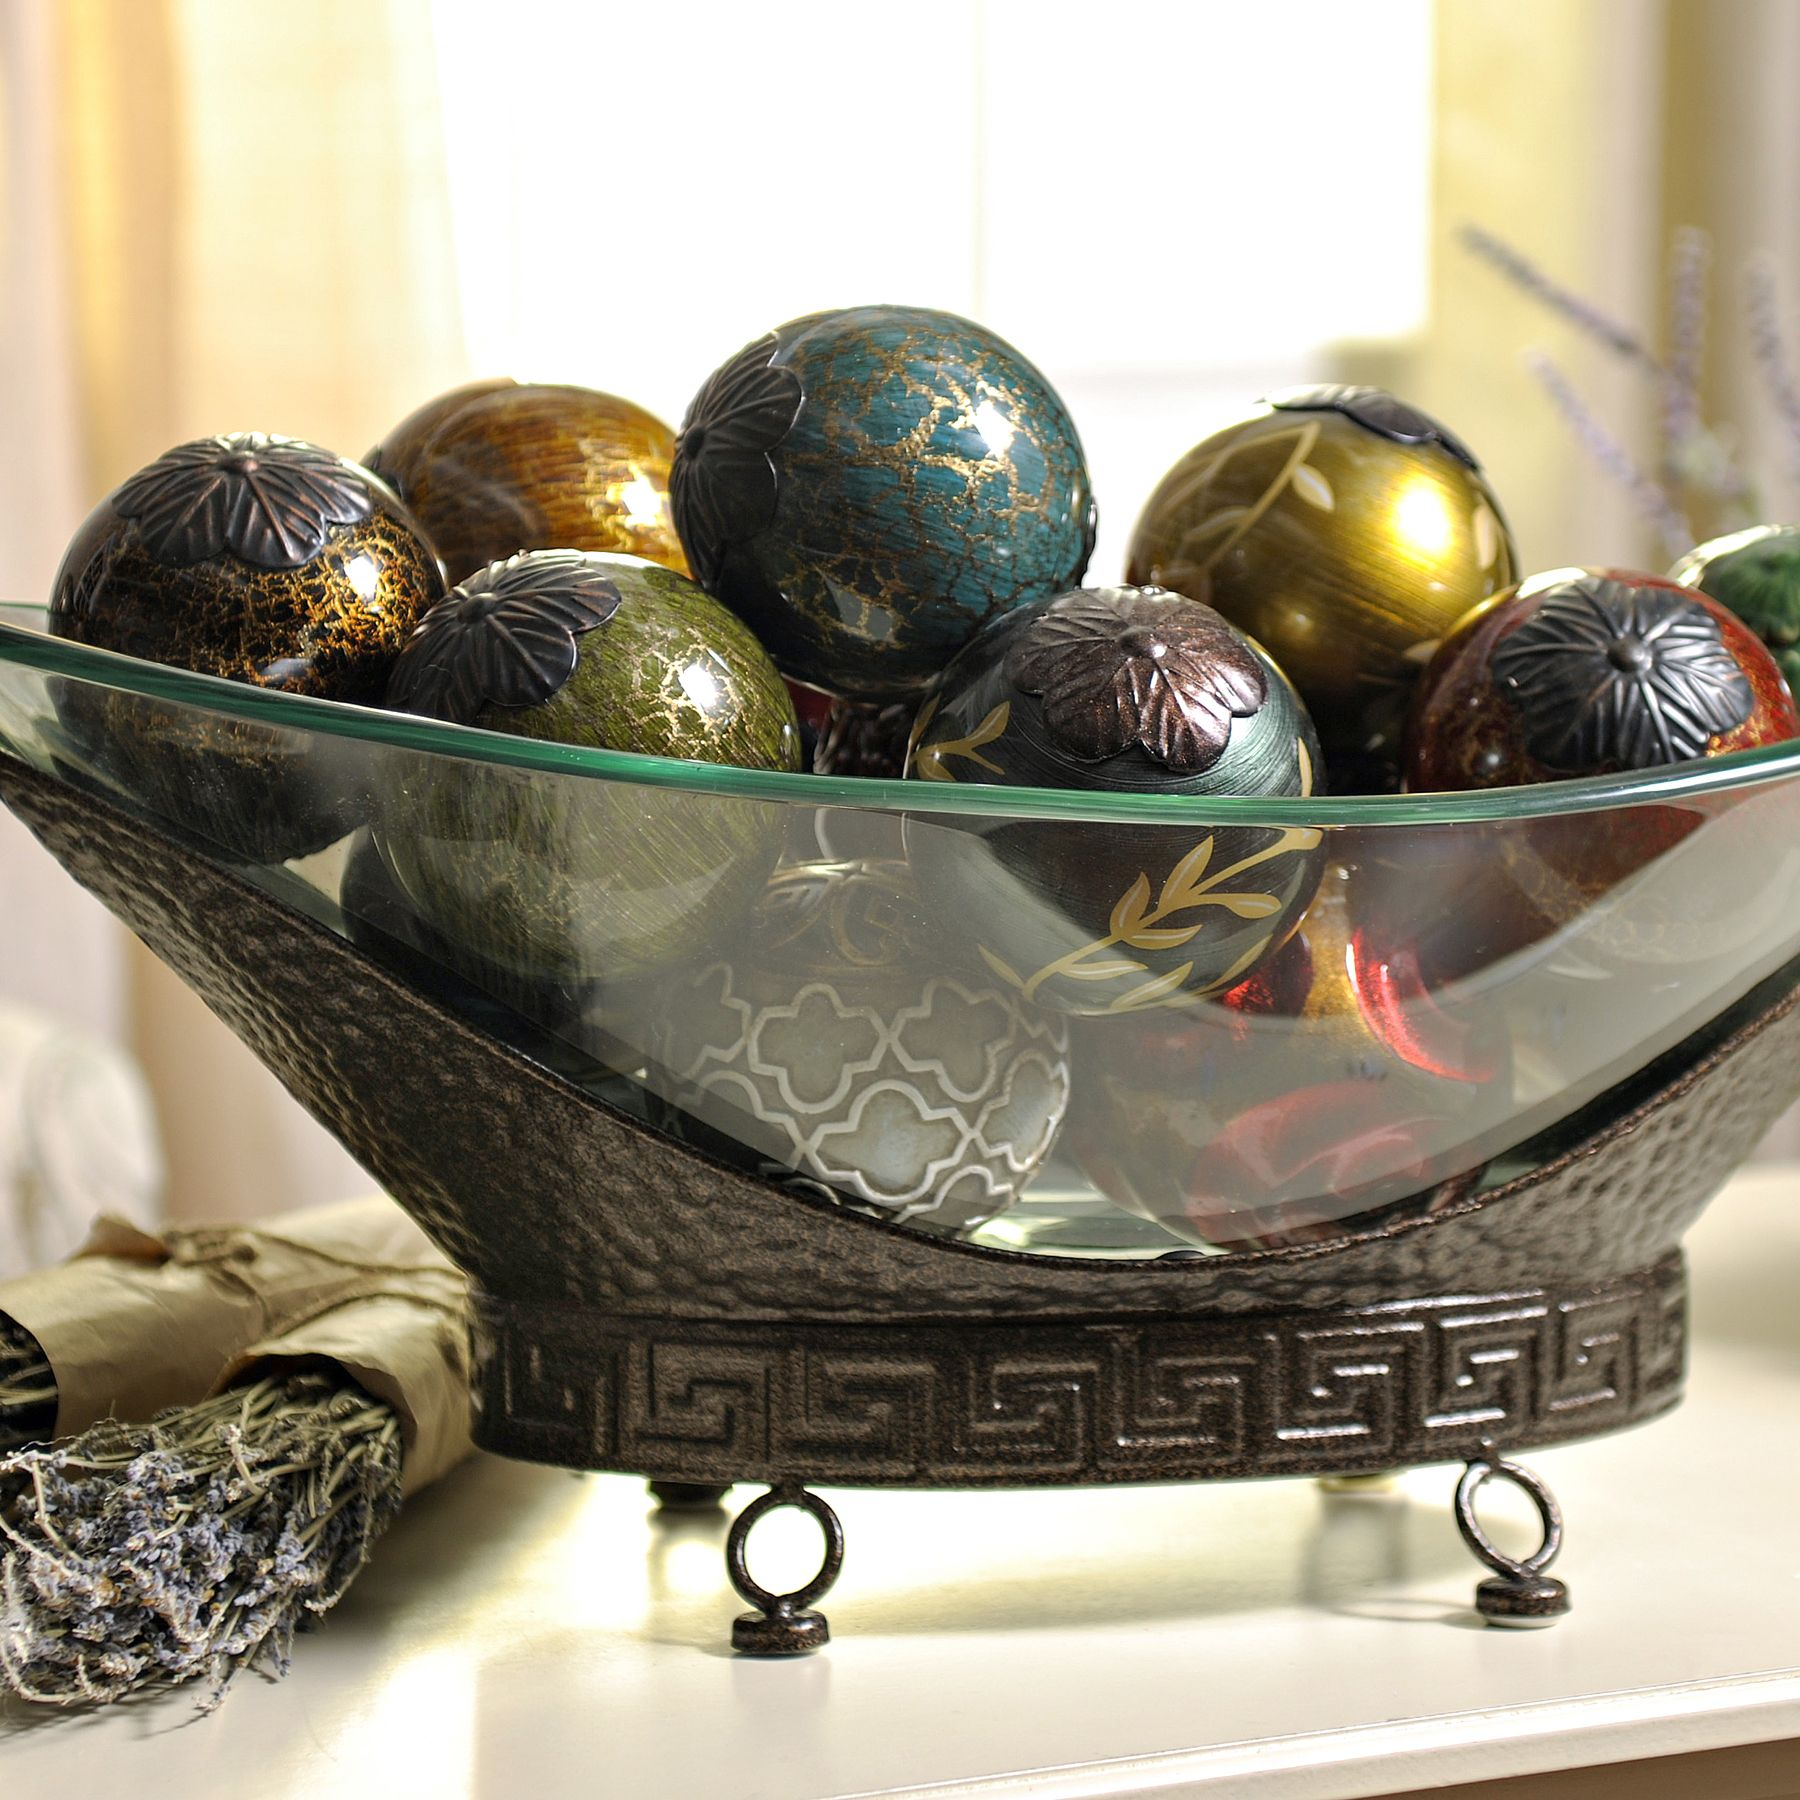 Oversized bronze bowl decorative items bowls and display